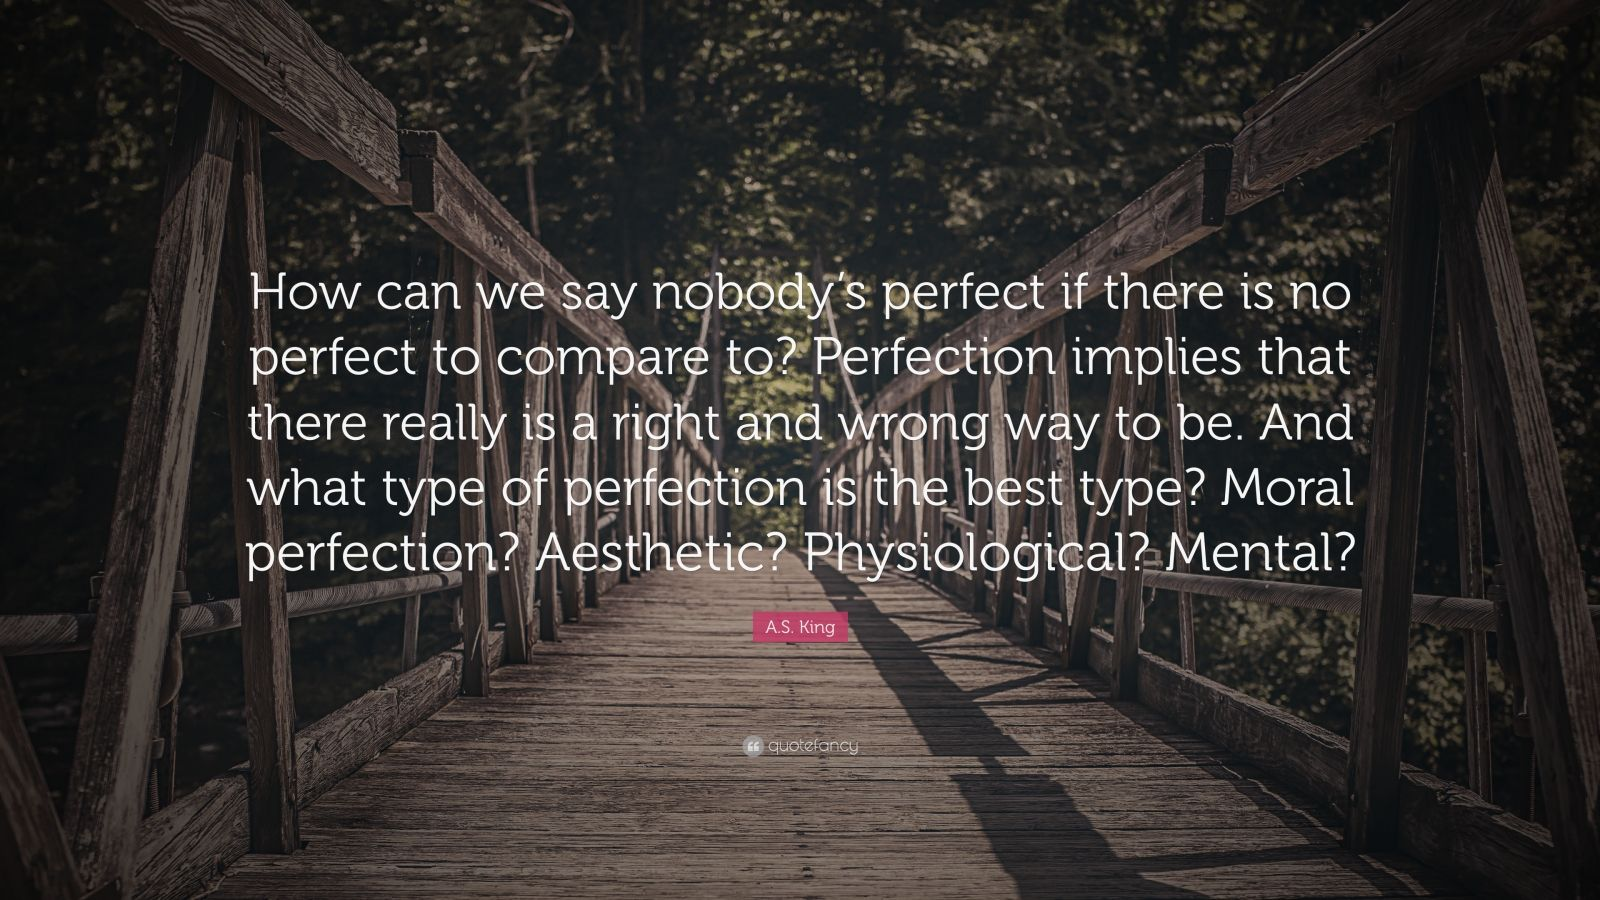 """A.S. King Quote: """"How can we say nobody's perfect if there is no perfect to compare to? Perfection implies that there really is a right and wrong way to be. And what type of perfection is the best type? Moral perfection? Aesthetic? Physiological? Mental?"""""""